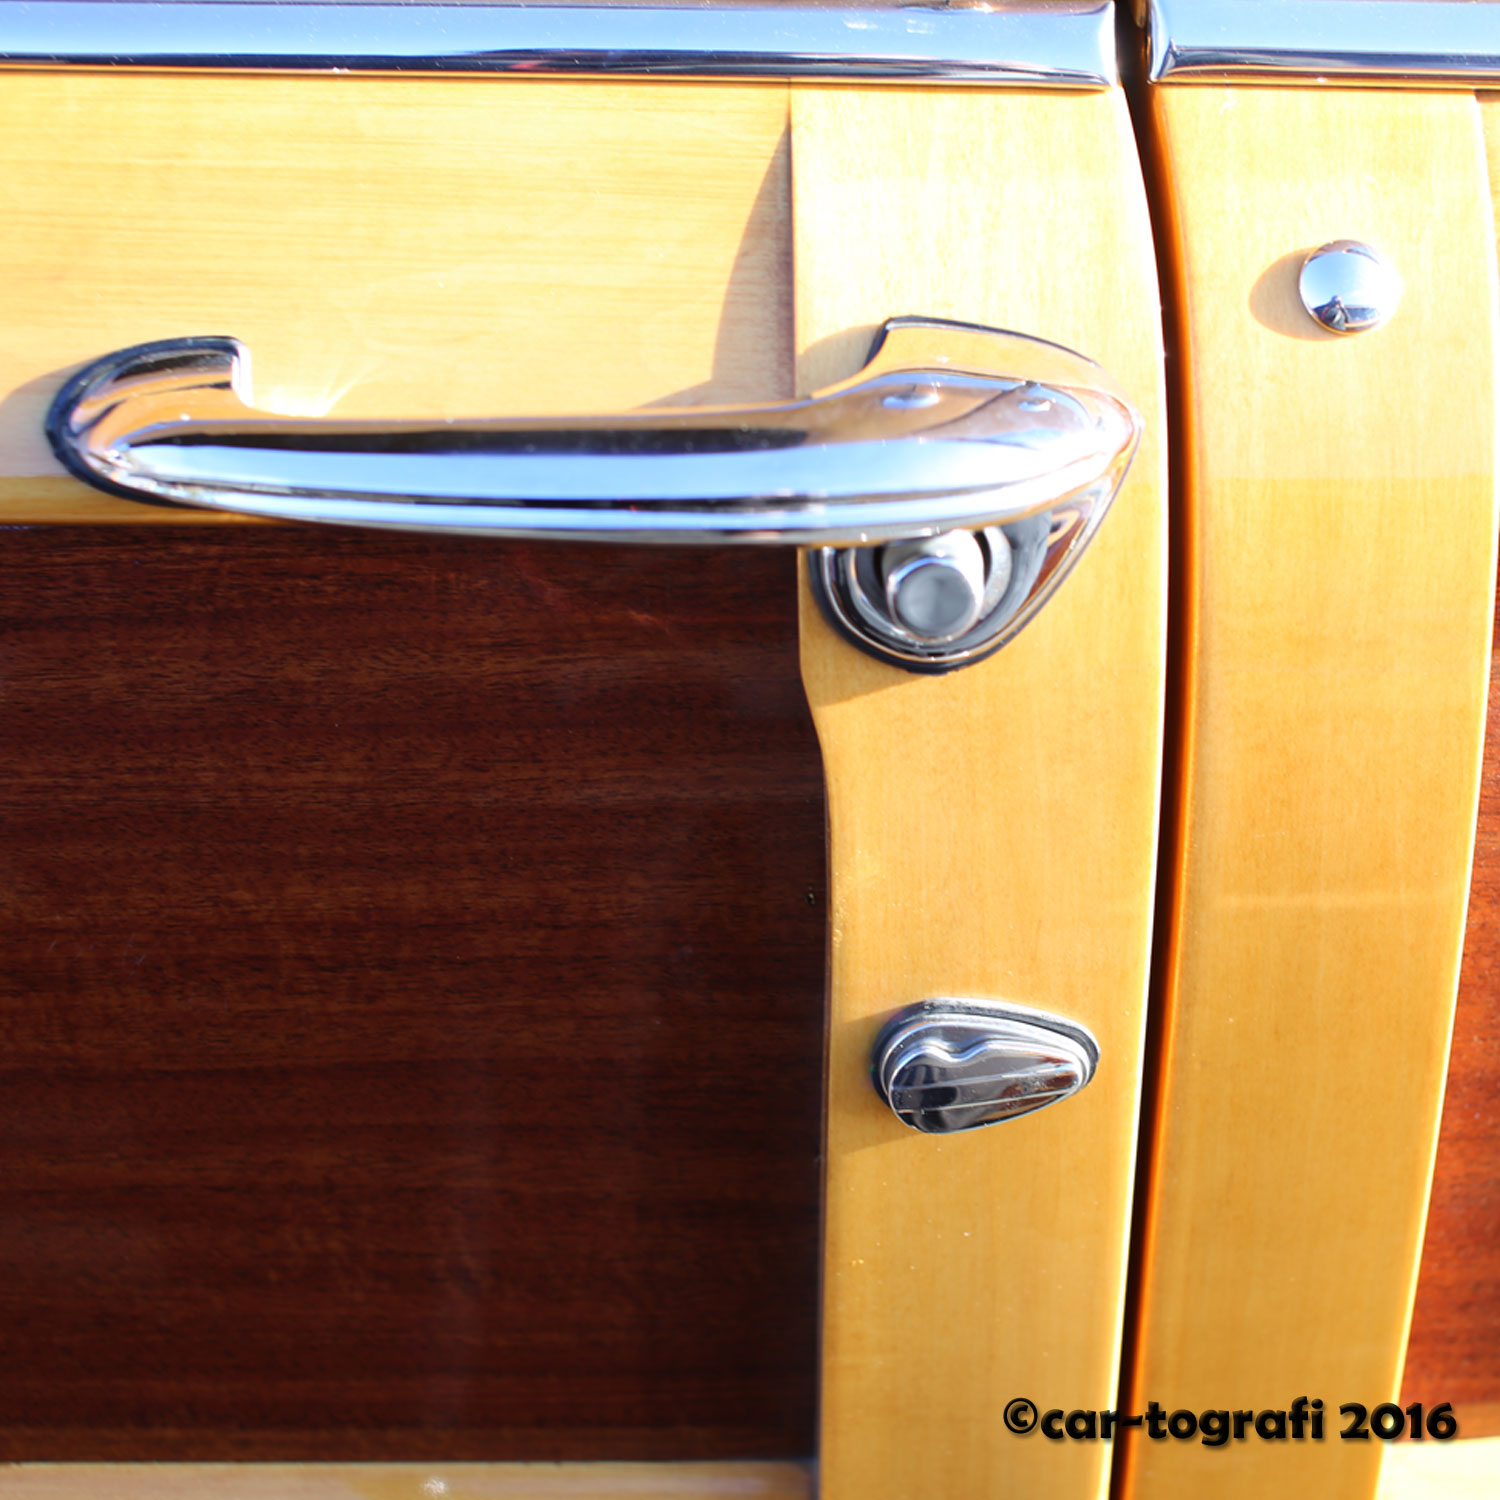 wood-doheny-car-tografi-22.jpg